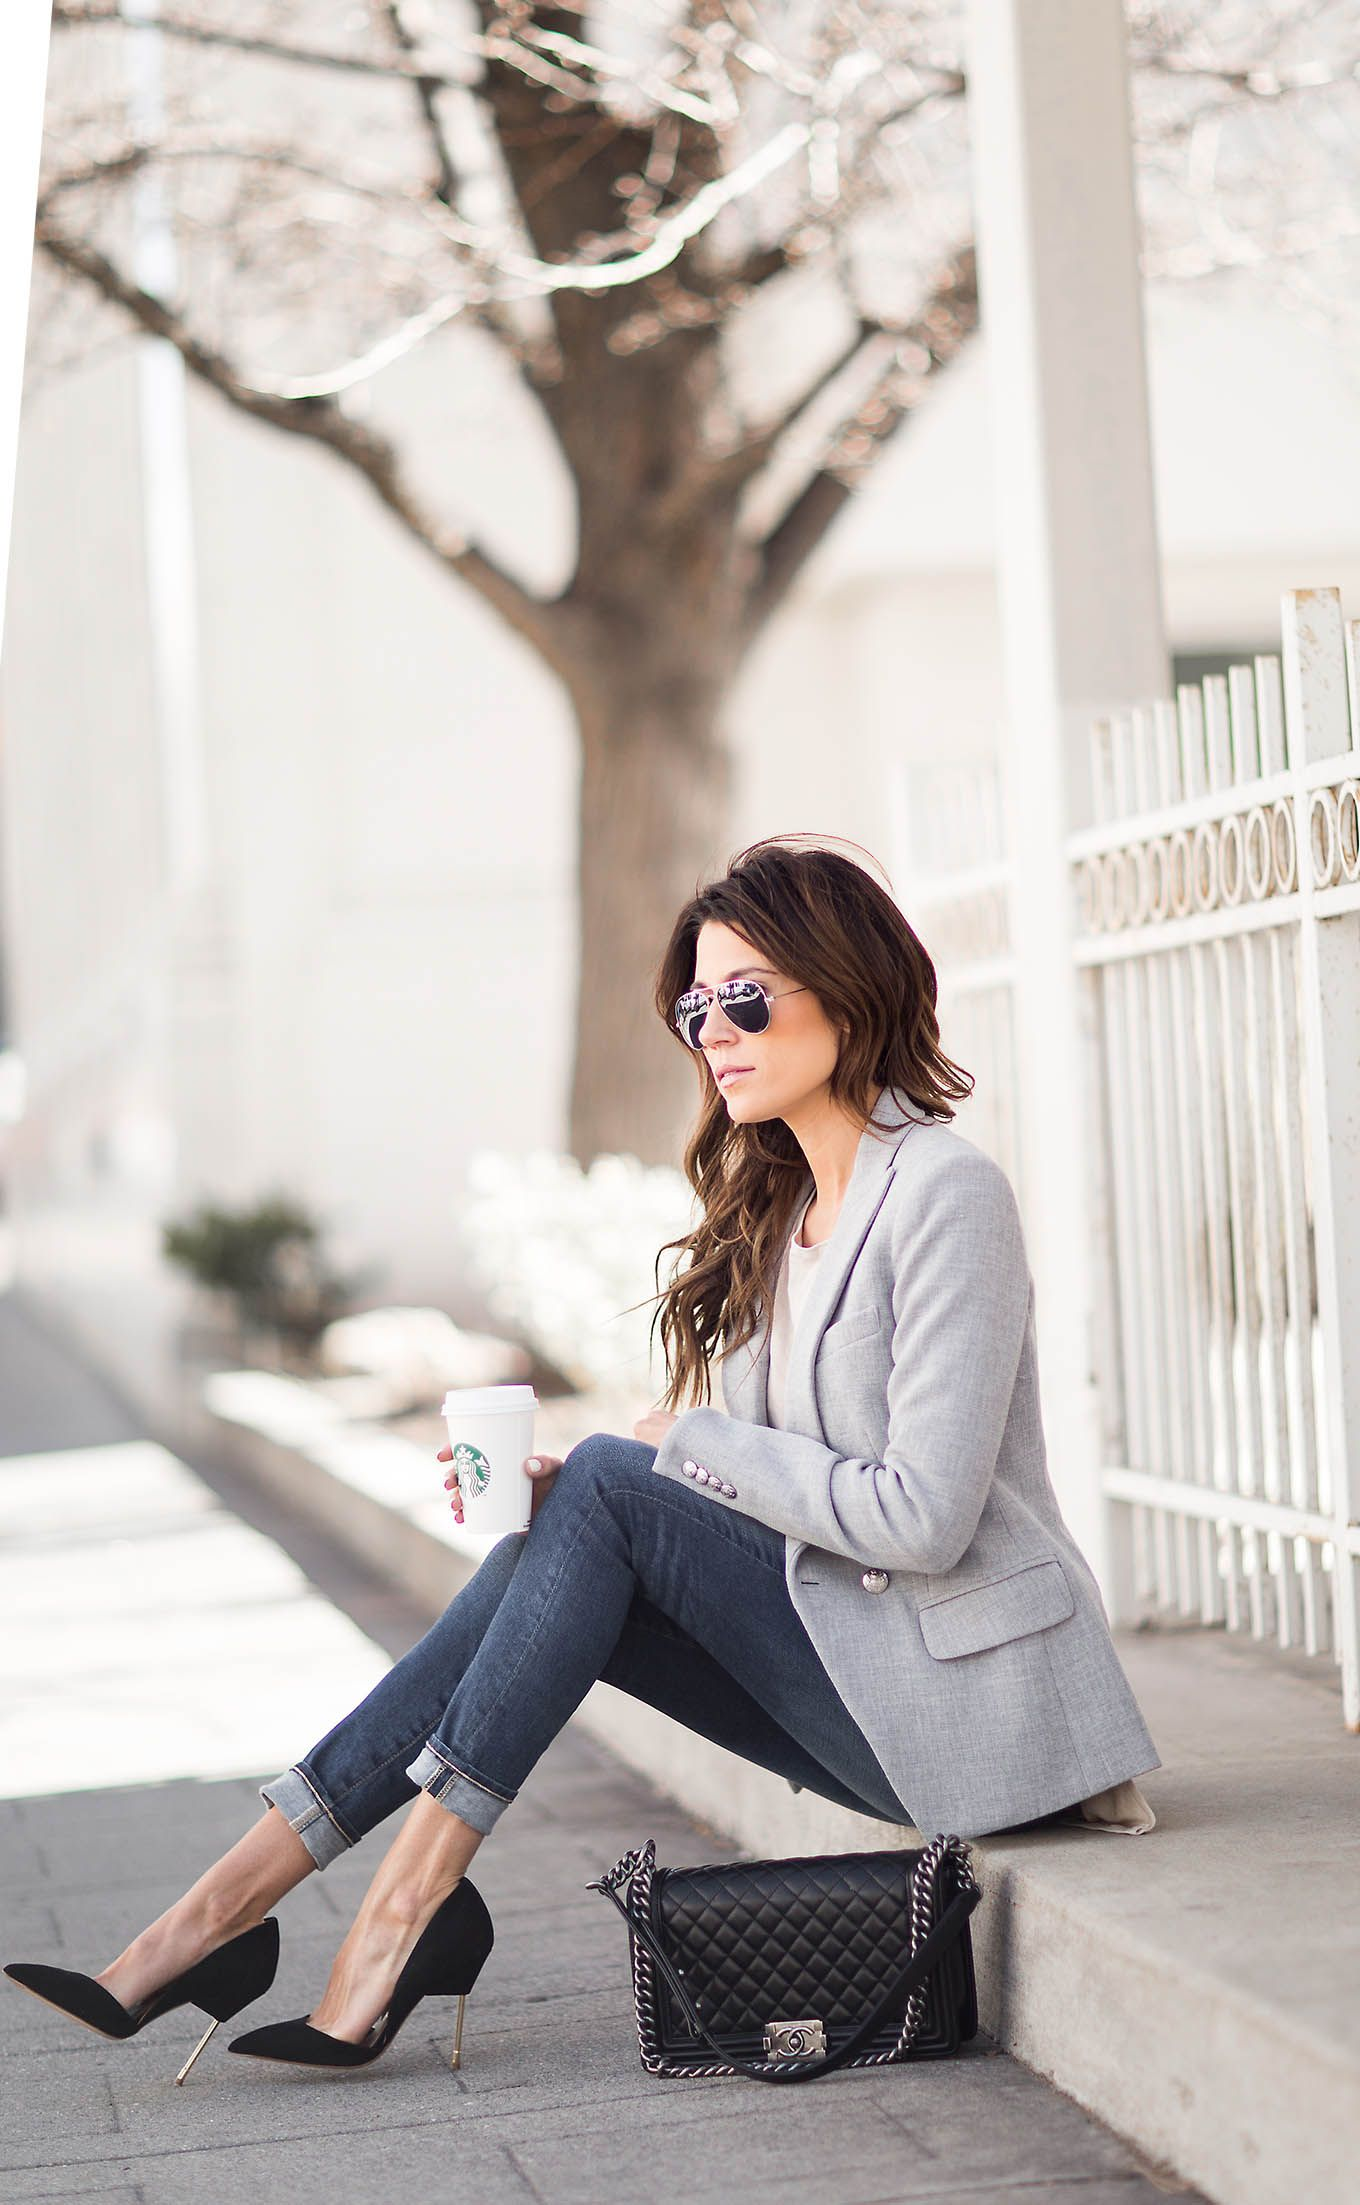 Wearing+a+sophisticated+grey+blazer+with+rolled+up+jeans+and+black+stilettos+has+given+Christine+Andrew+an+effortlessly+stylish+look+in+no+time+at+all!+We+really+recommend+this+simple+but+effective+style!+Blazer:+intermix,+Top:+ILY+Couture.+